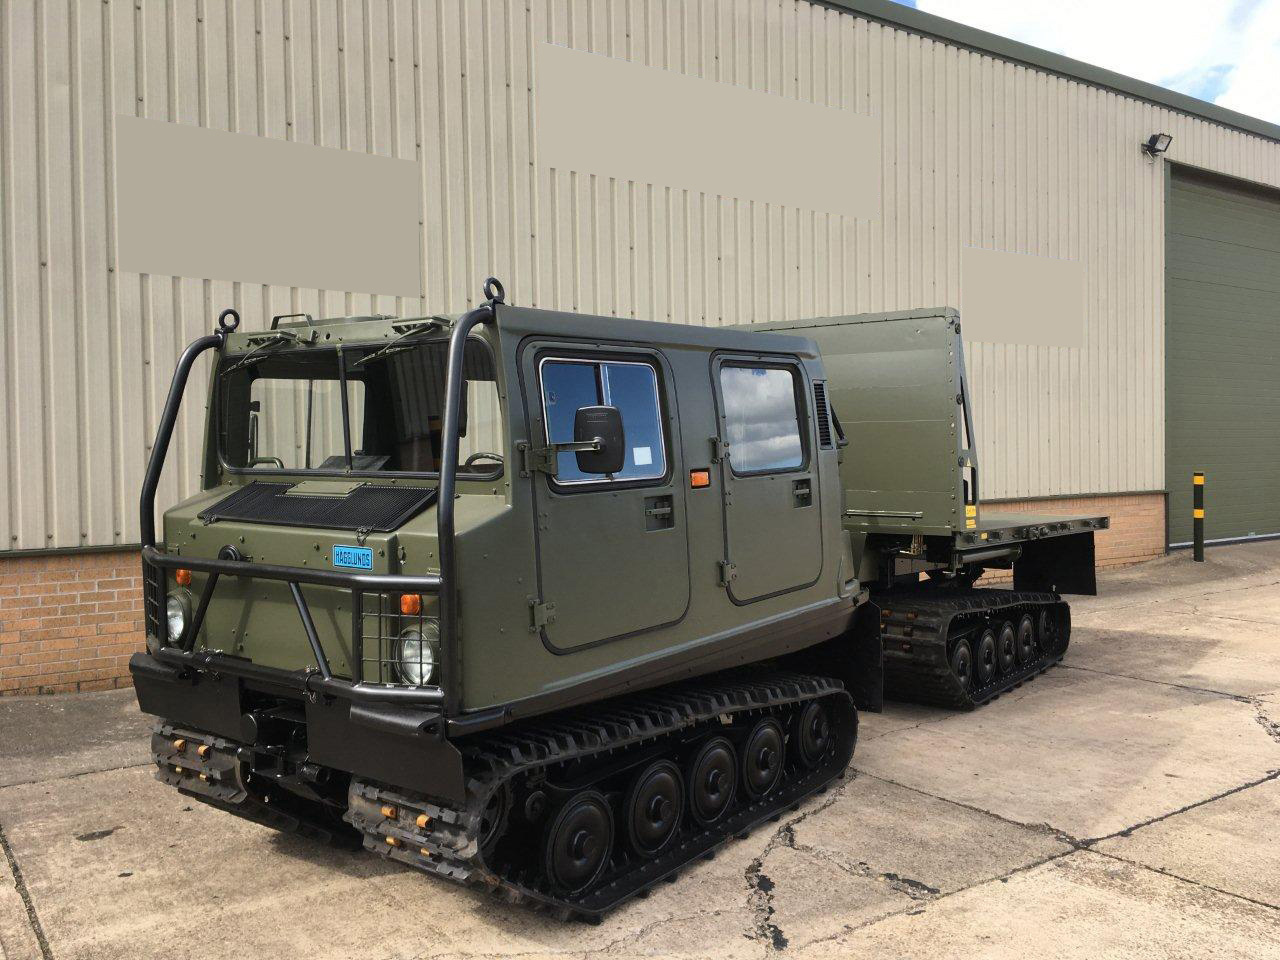 military vehicles for sale - <a href='/index.php/hagglund-bv206/models-available/50303-hagglunds-bv206-load-carrier-with-crane' title='Read more...' class='joodb_titletink'>Hagglunds Bv206 Load Carrier with Crane</a>